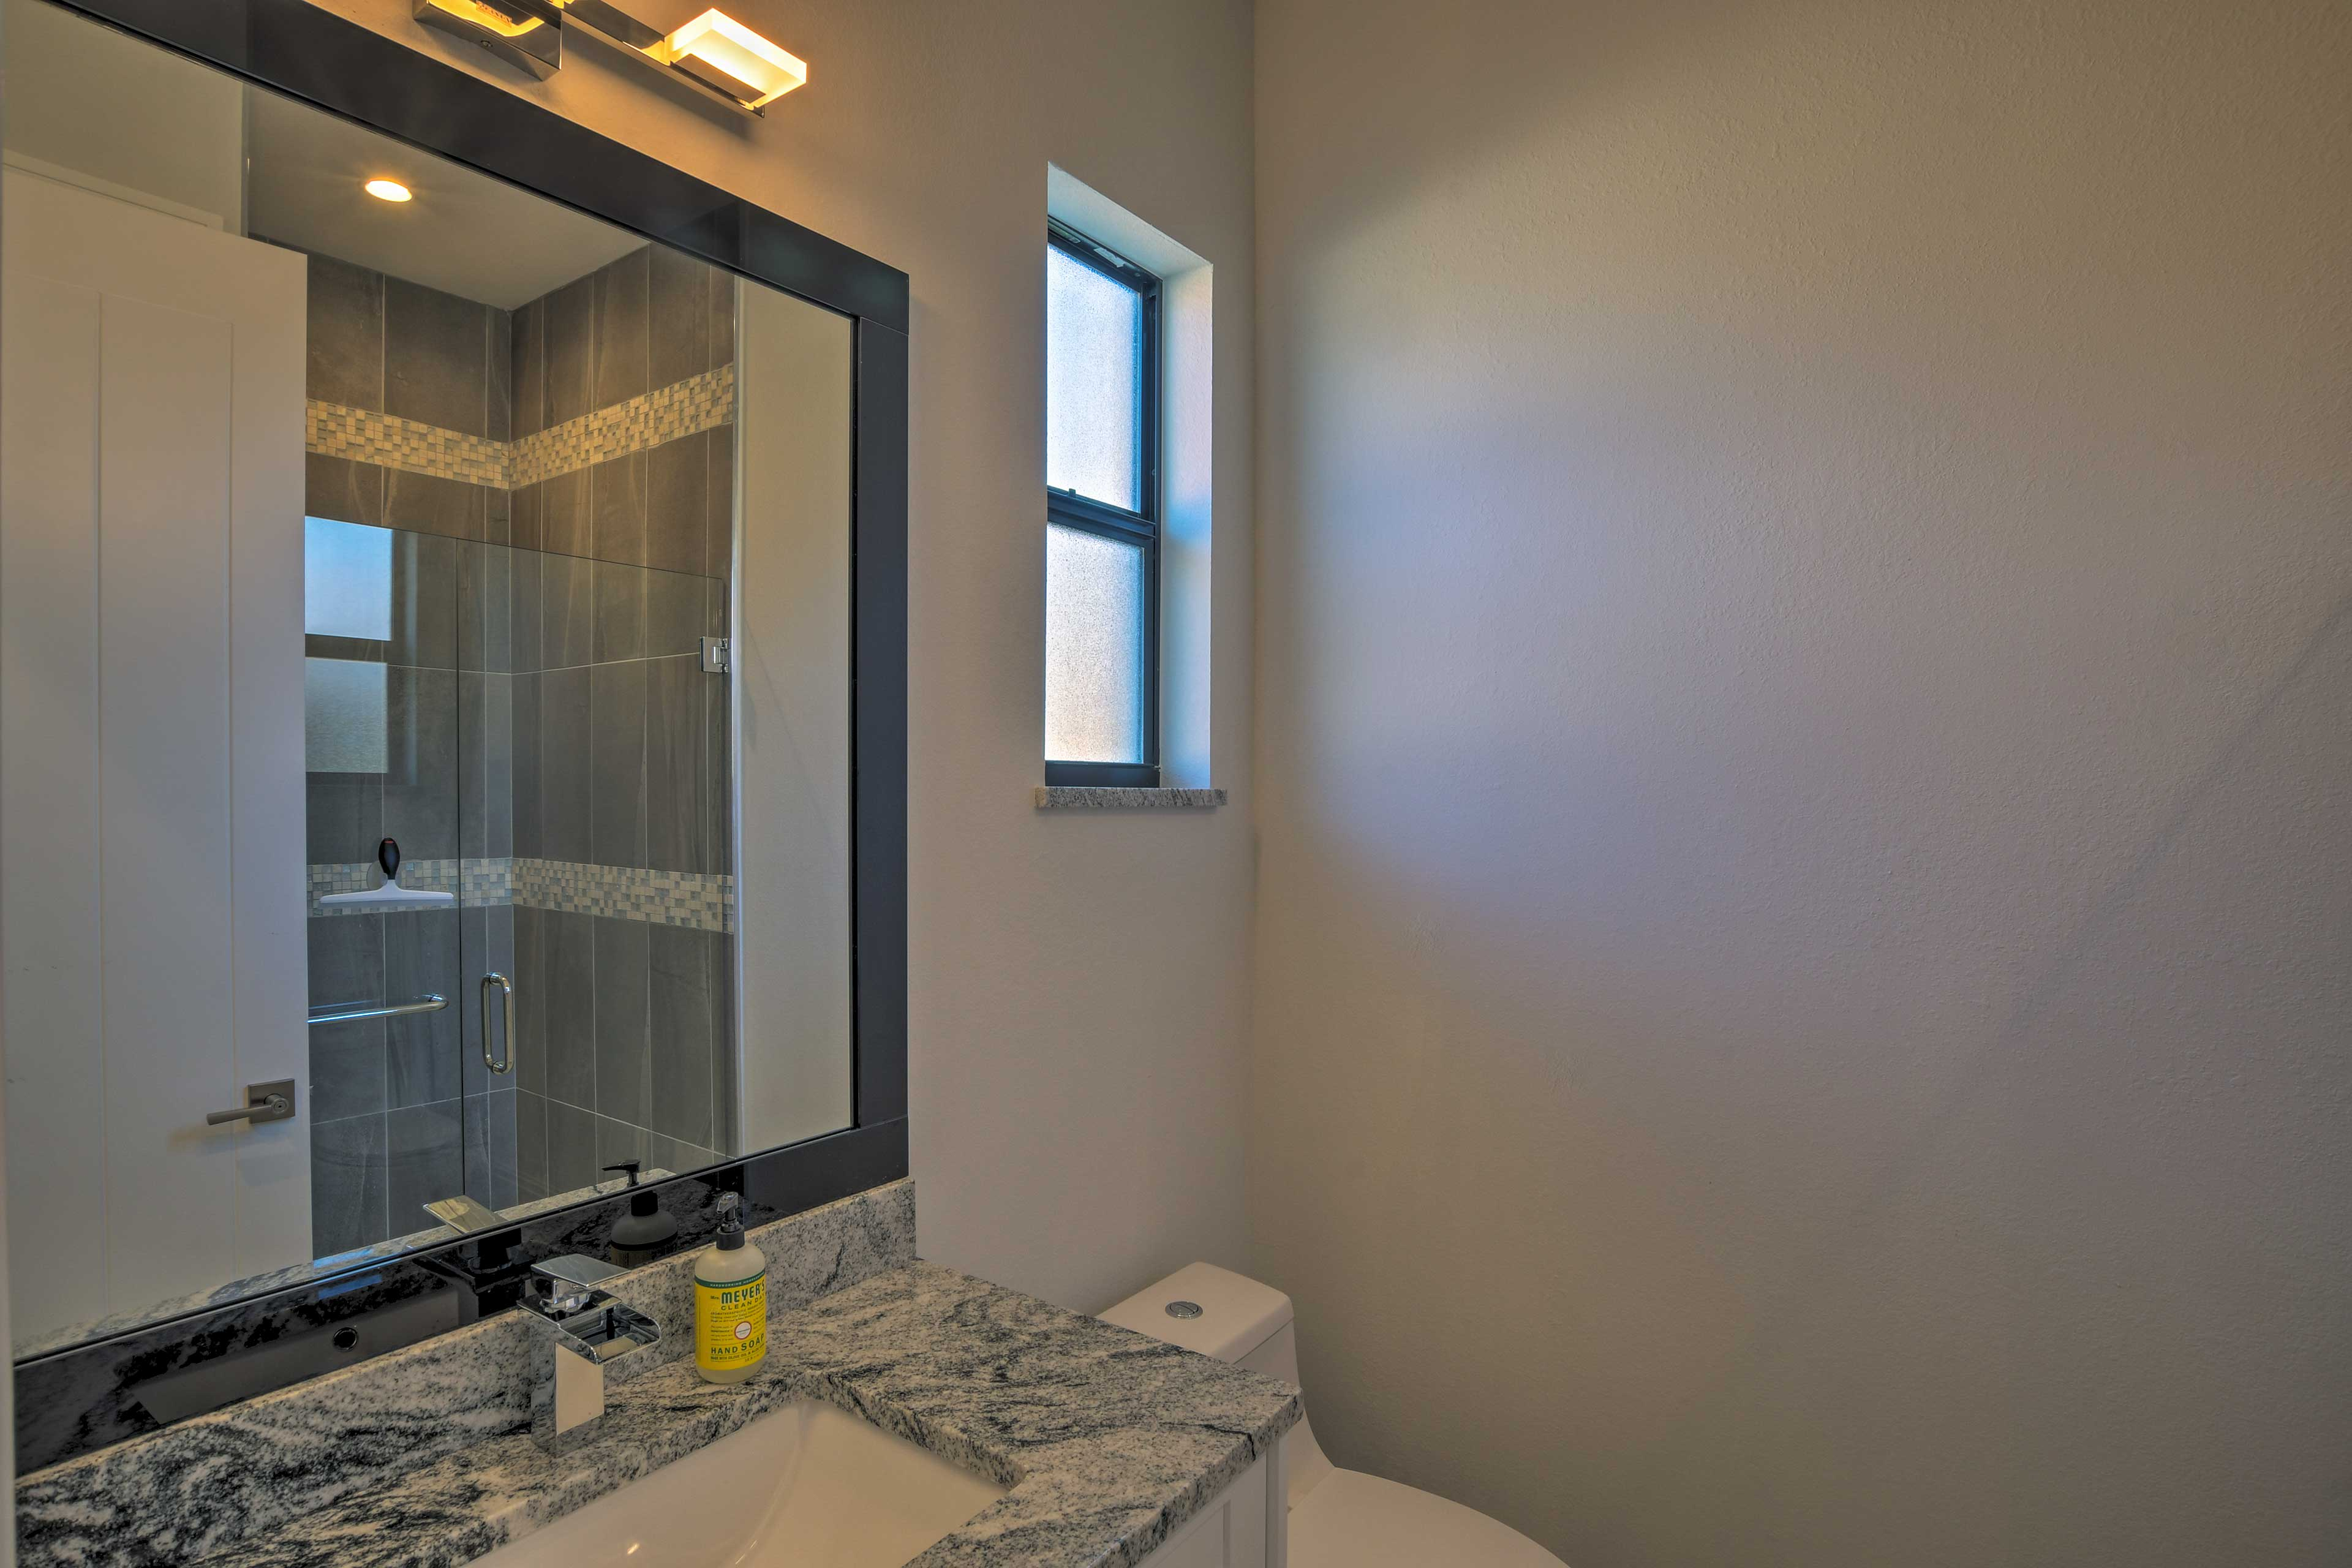 With 4 bathrooms, the whole group will have no trouble getting ready each day.